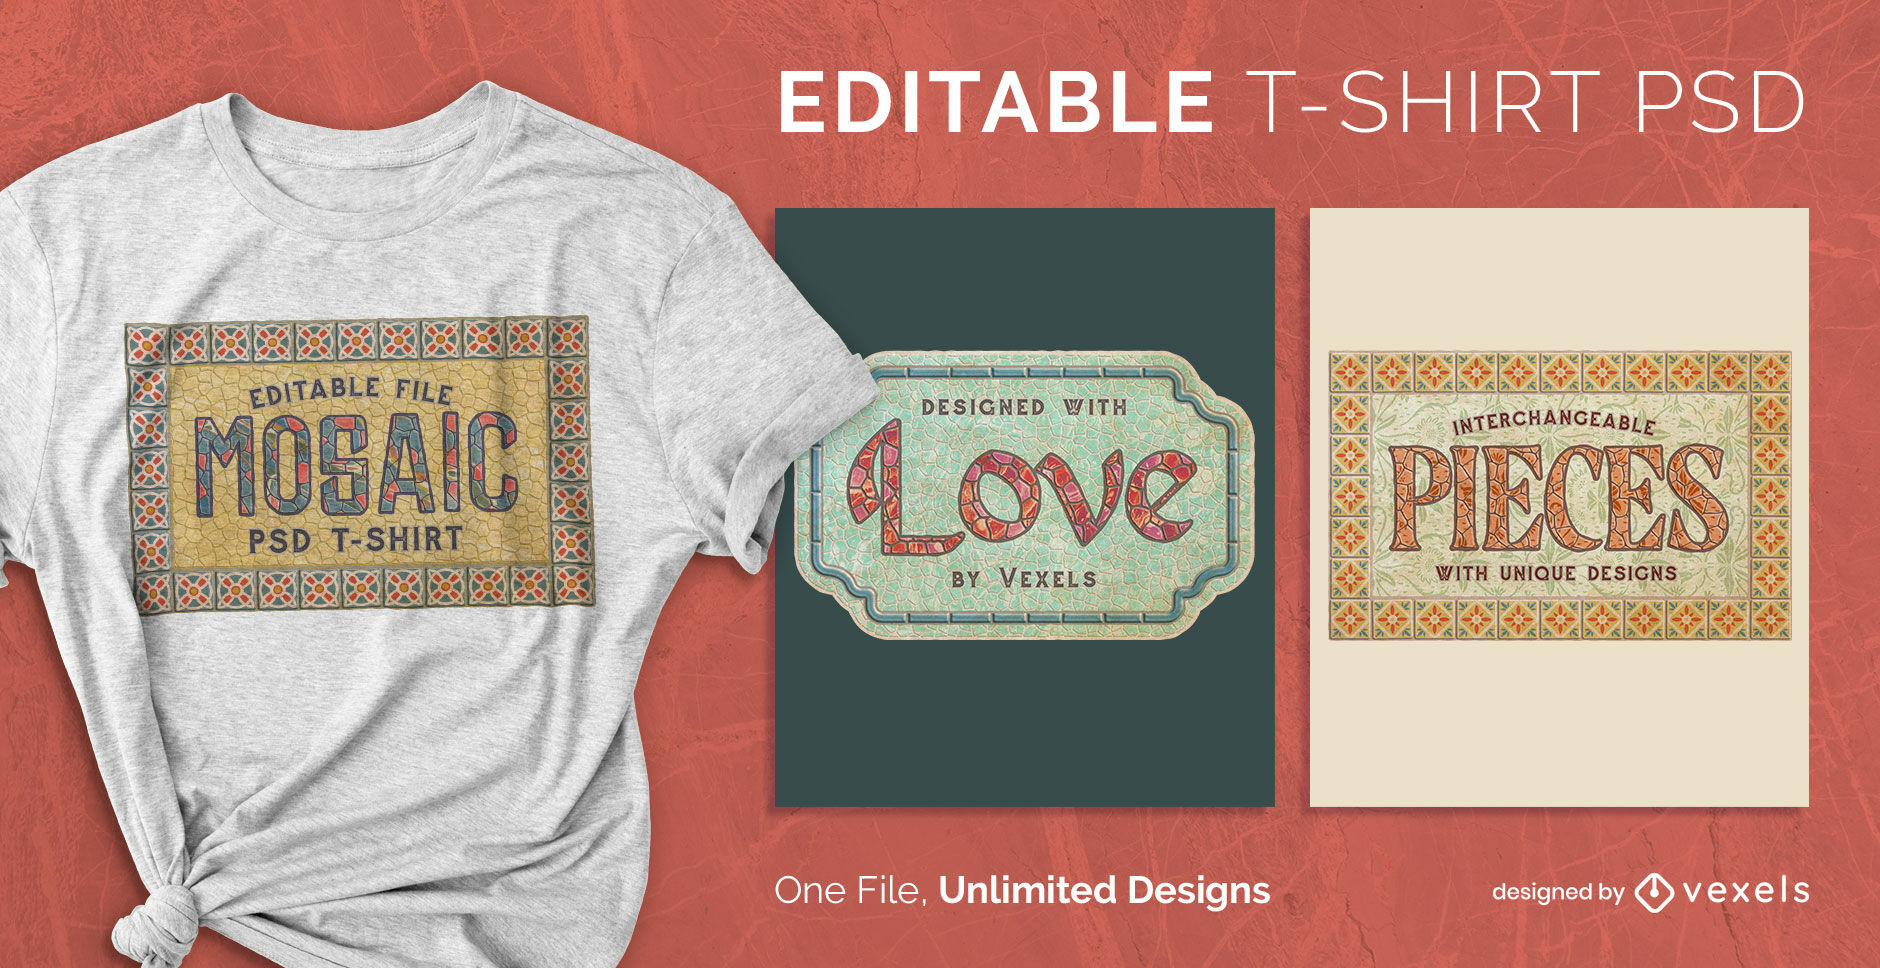 Decorative mosaic quote scalable t-shirt psd